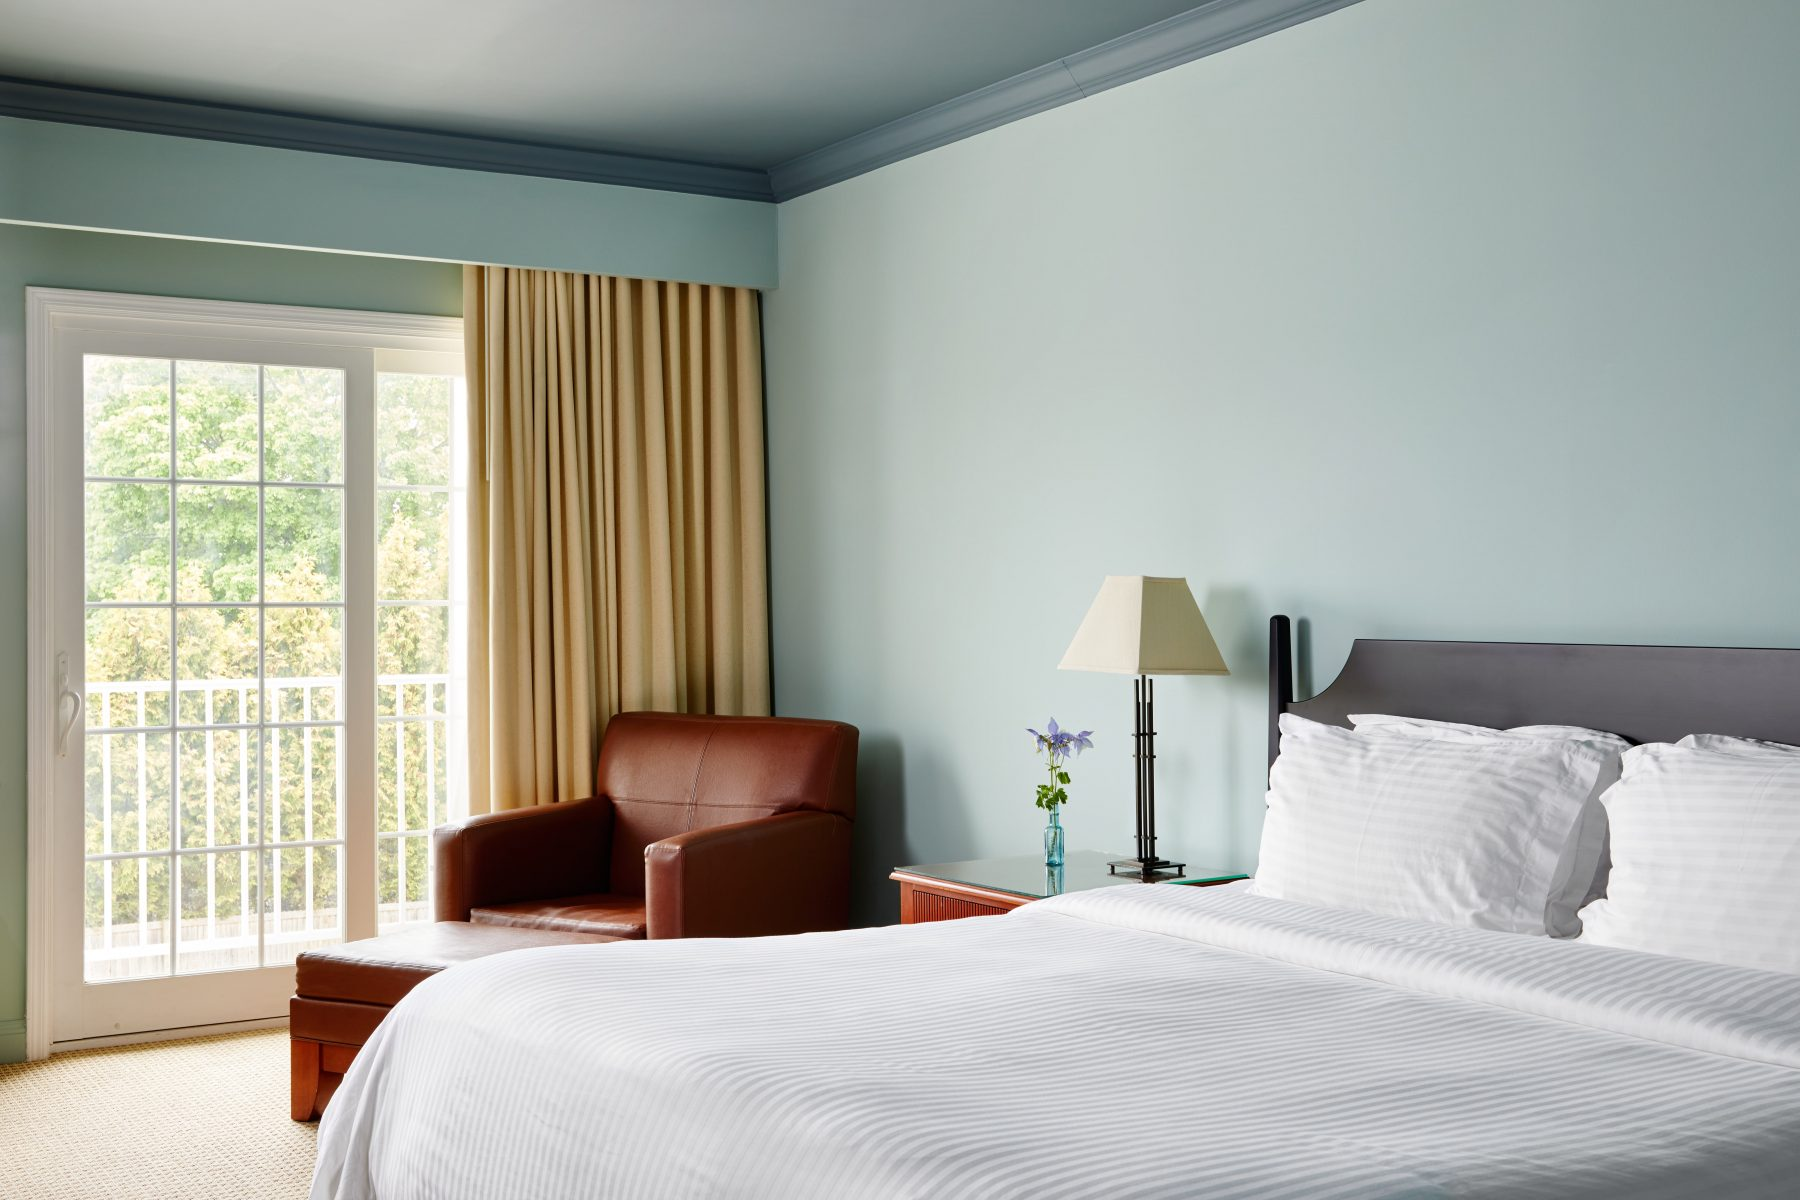 King bed suite with open window of the balcony